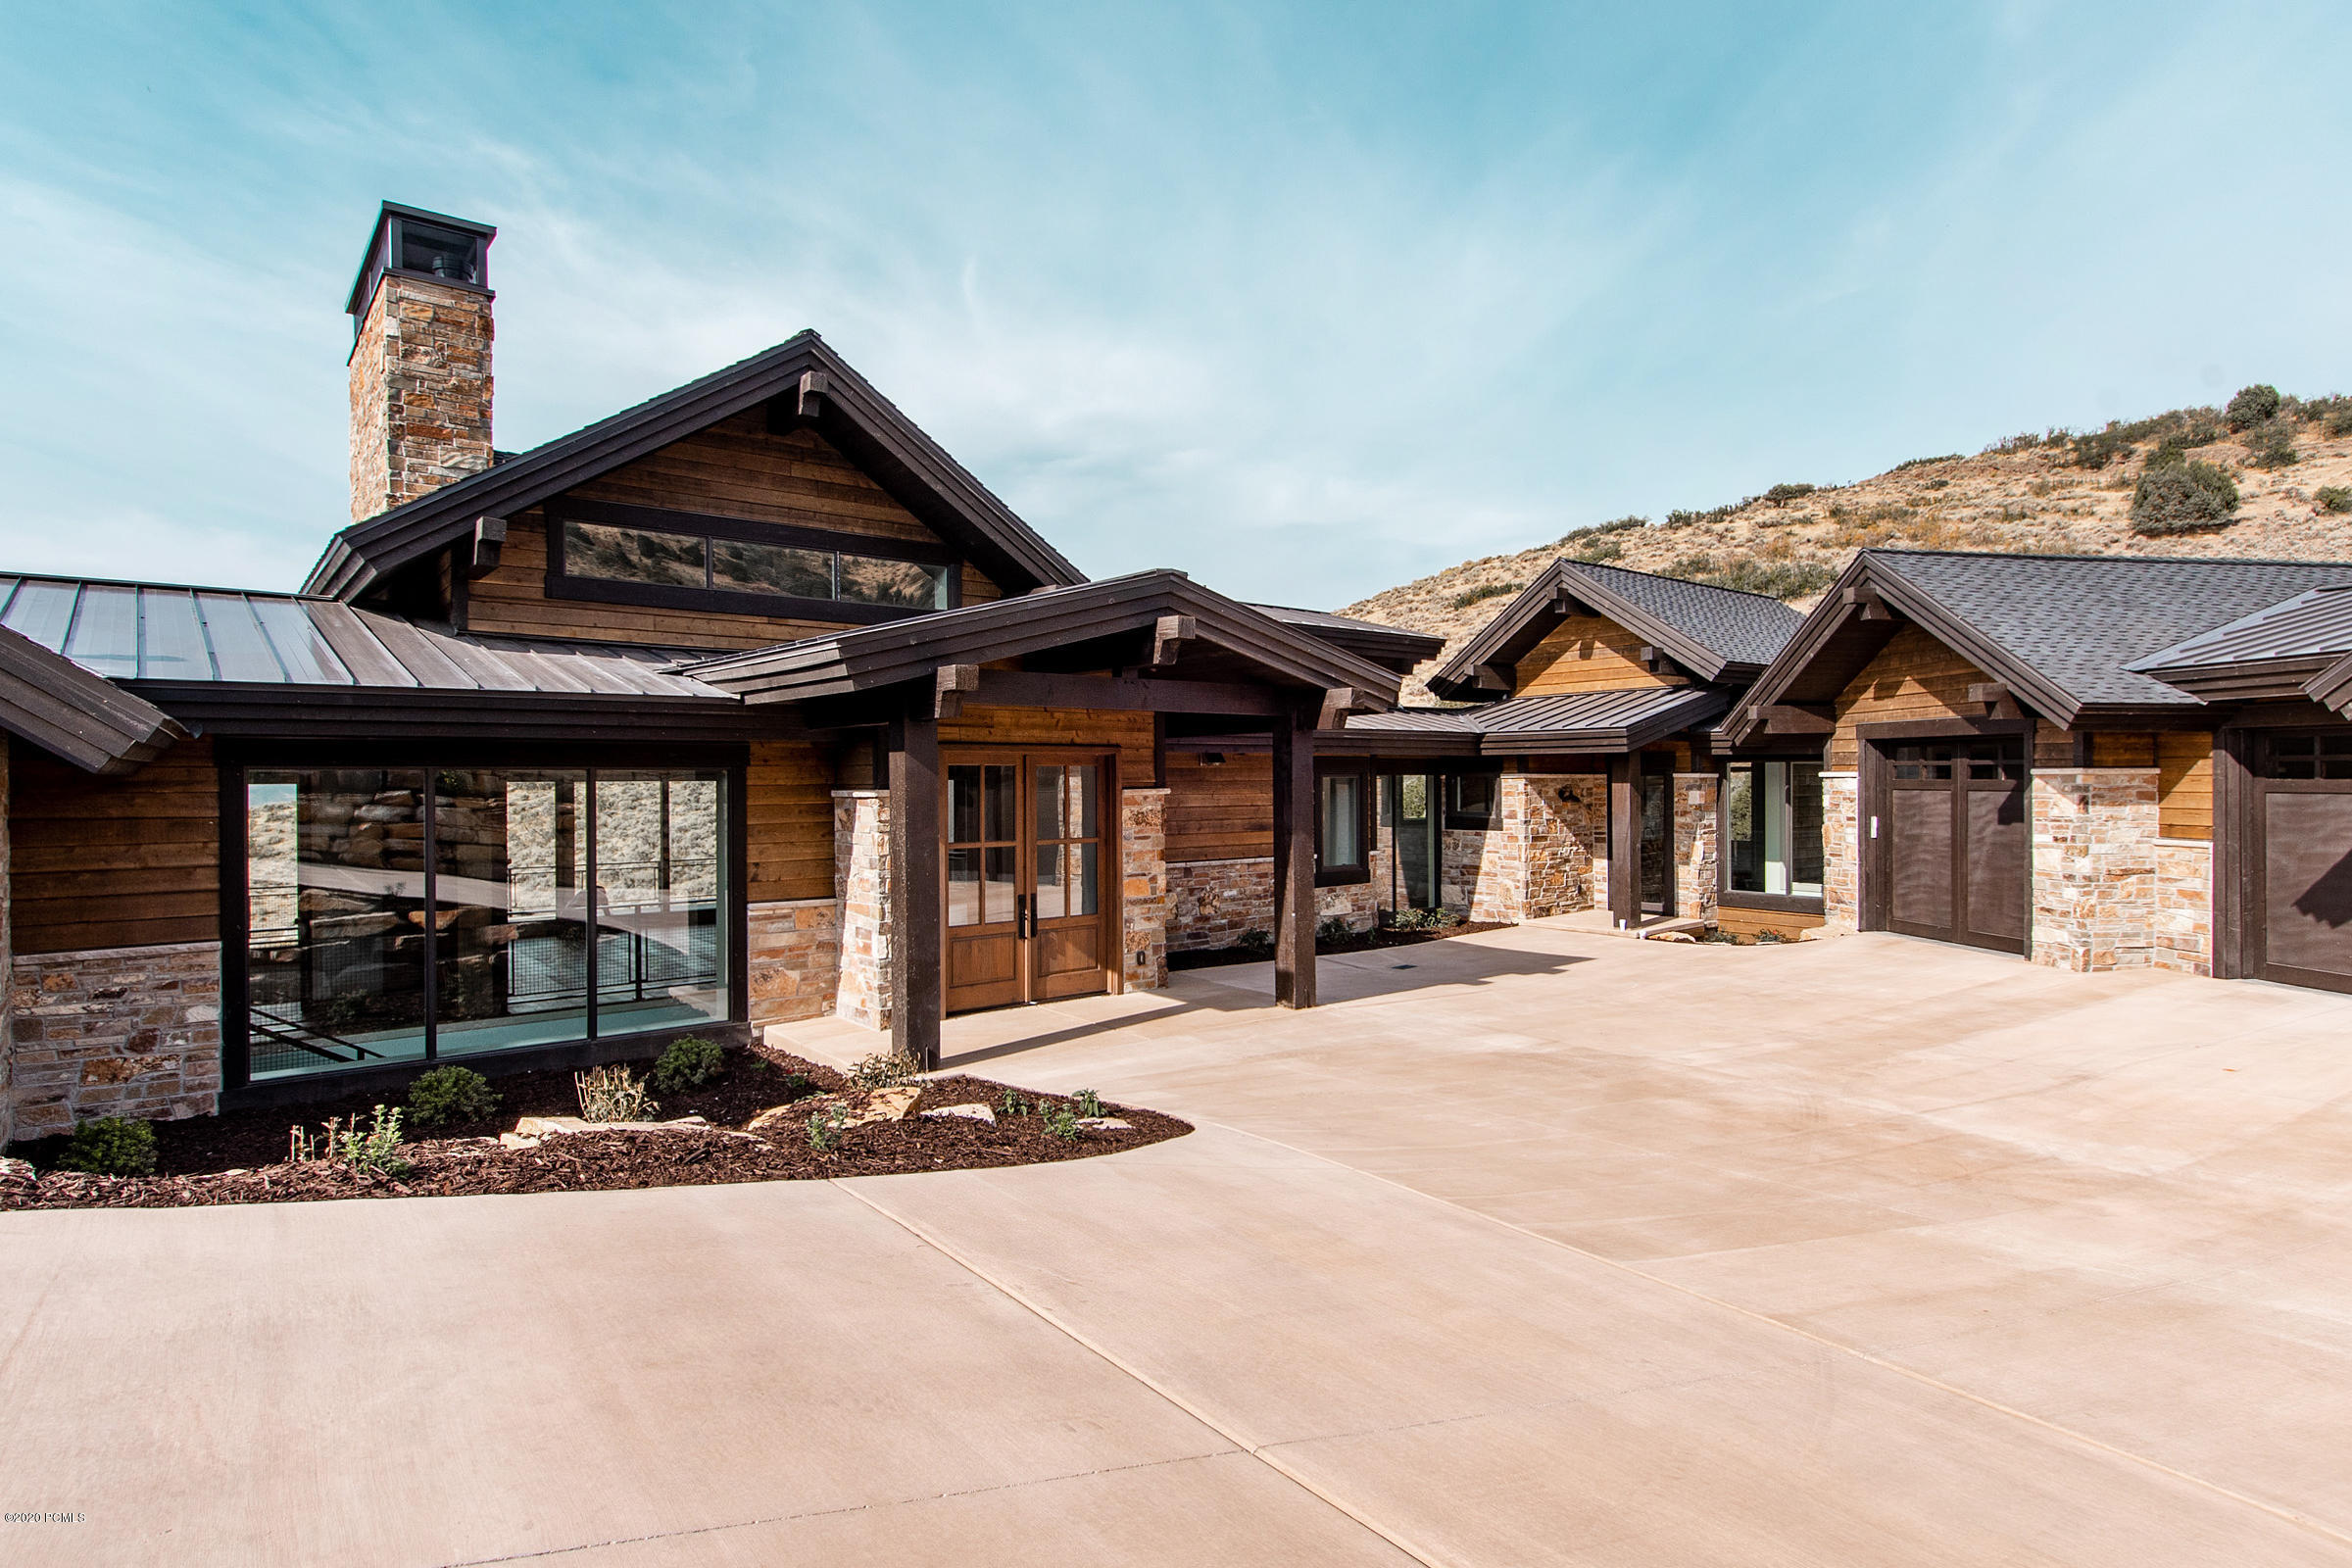 1689 Chimney Rock Rd (Lot 527), Heber City, Utah 84032, 5 Bedrooms Bedrooms, ,6 BathroomsBathrooms,Single Family,For Sale,Chimney Rock Rd (Lot 527),12001561